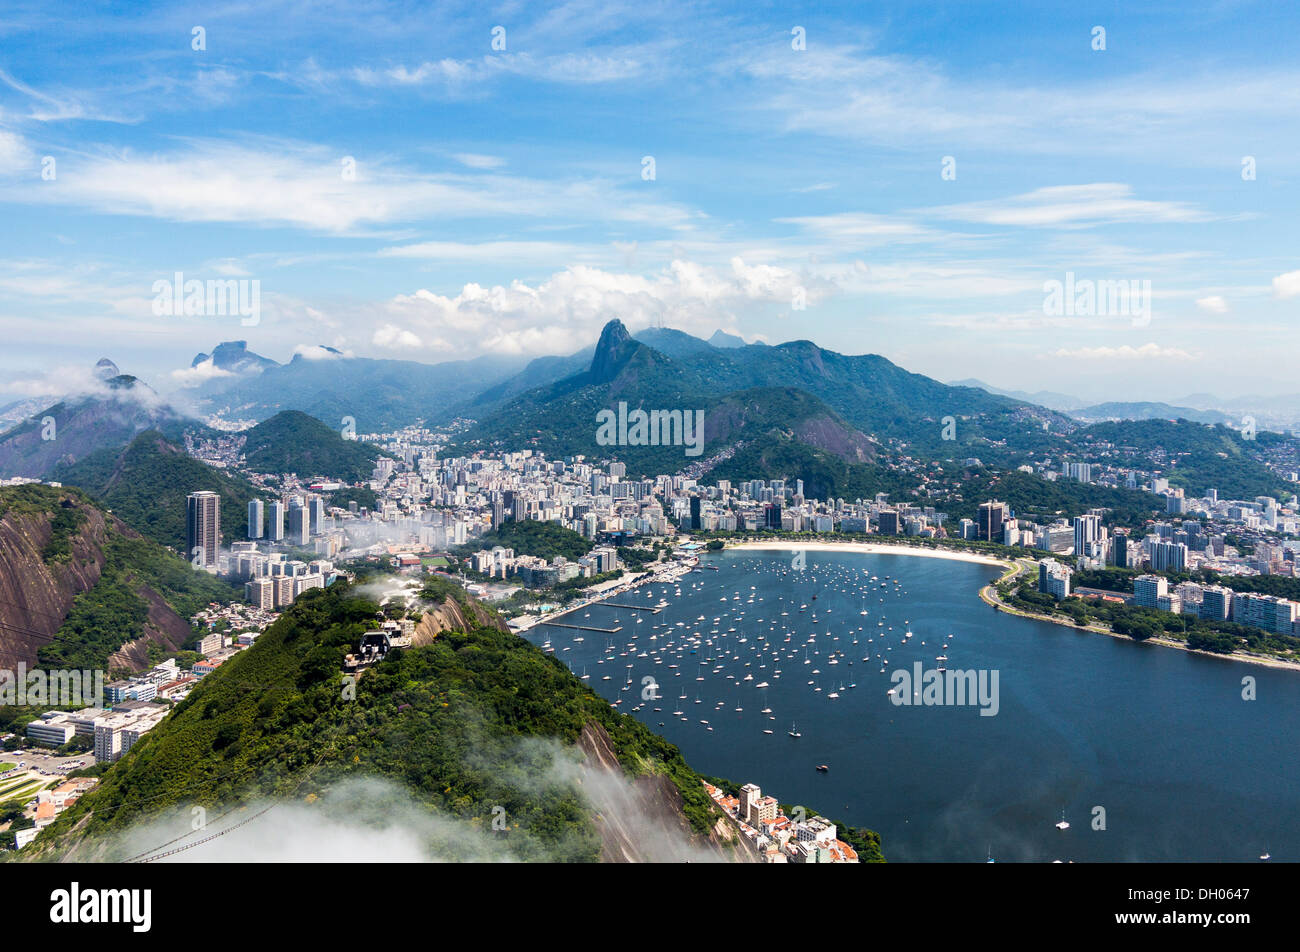 Aerial view of city and harbor of Rio de Janeiro in Brazil from cable car on Sugarloaf Mountain - Stock Image